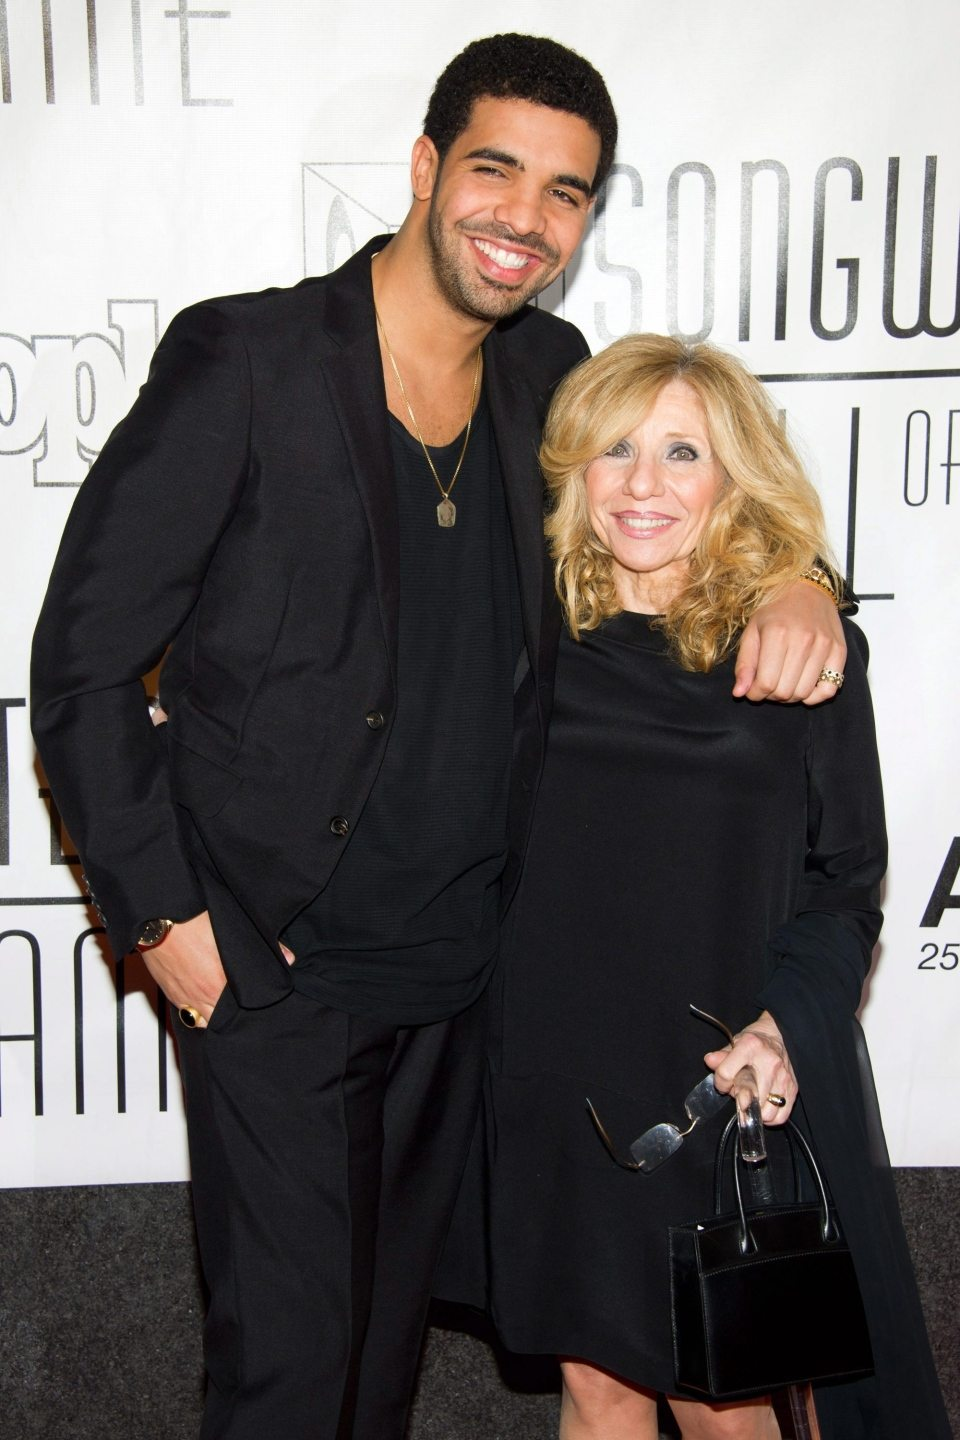 drake's height mum